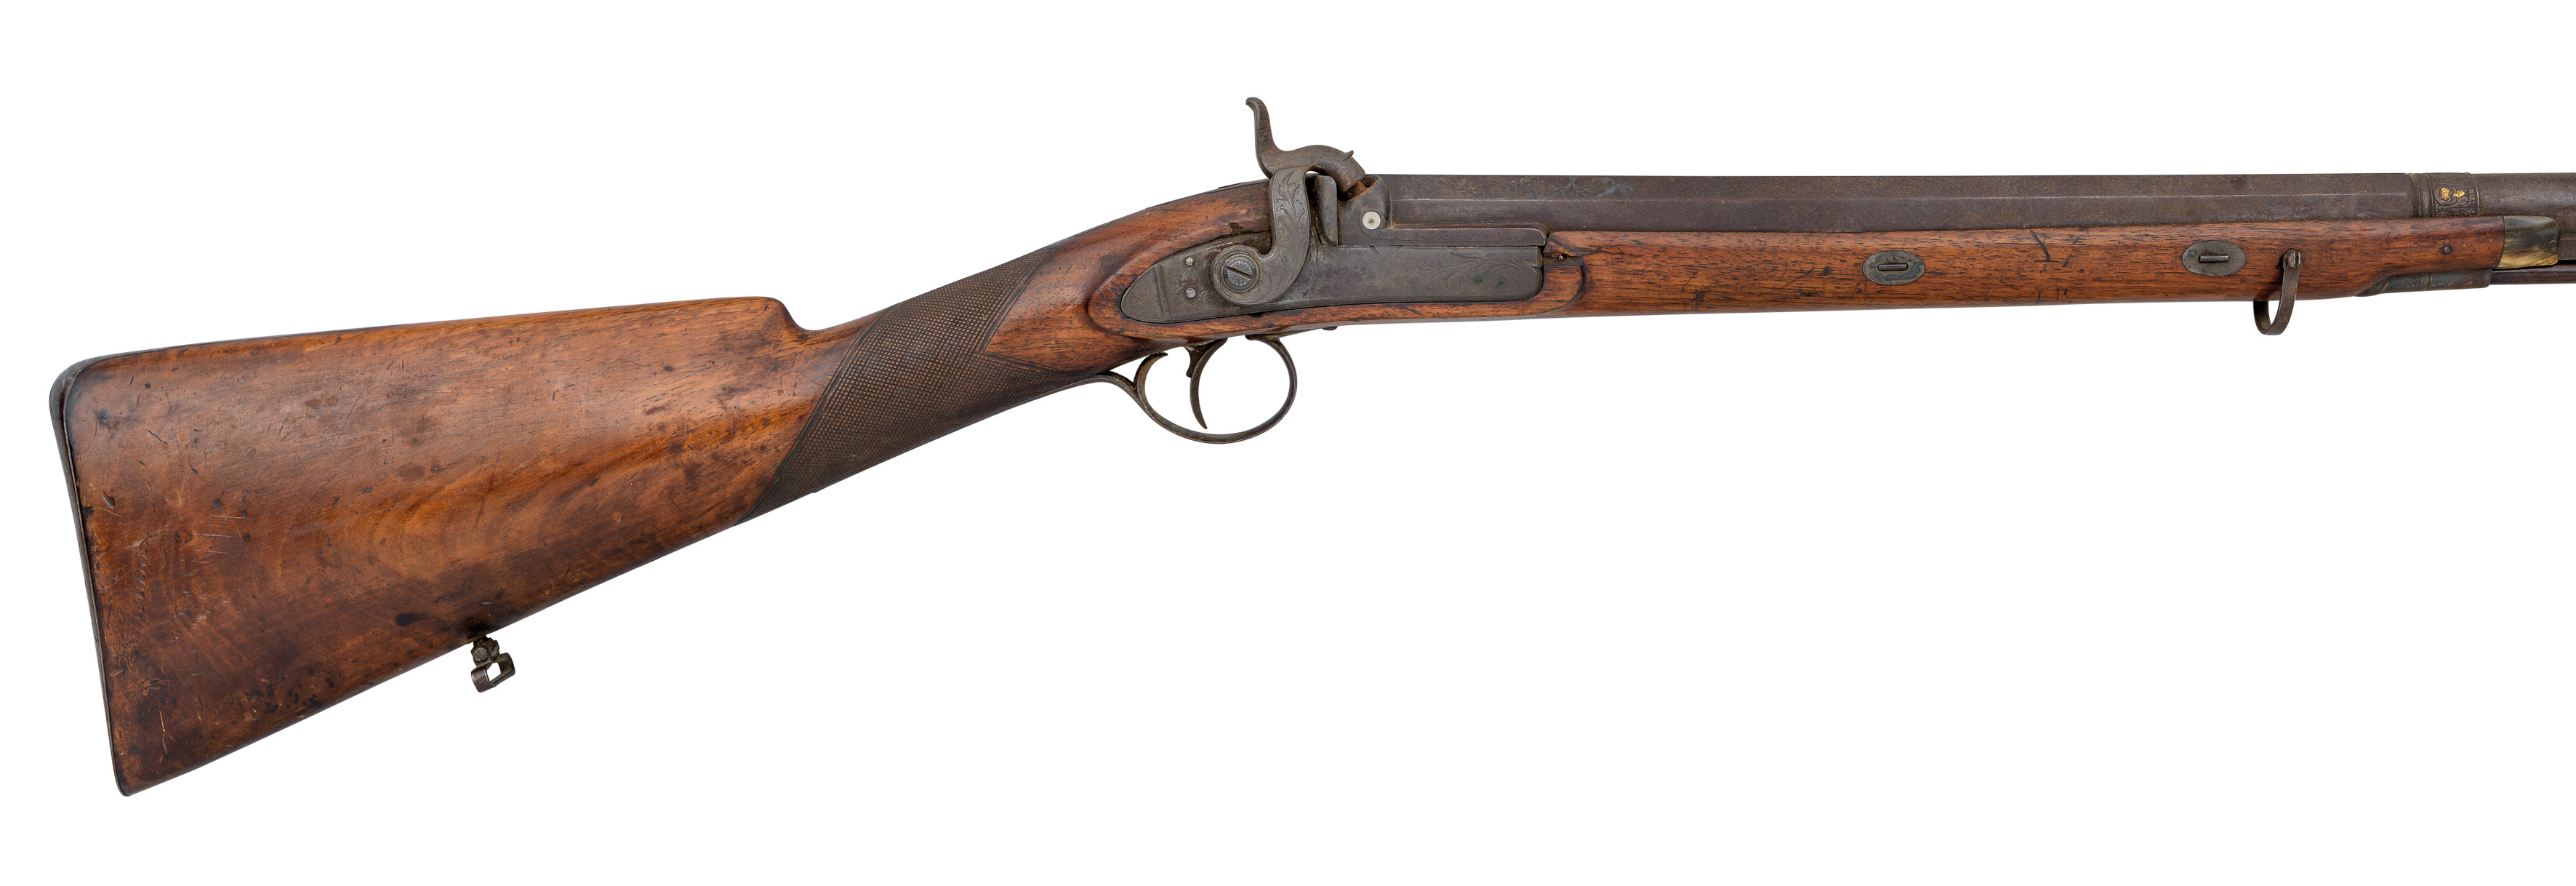 Ⓦ A 12 BORE PERCUSSION SPORTING GUN BY E. BOND^ CIRCA 1820^ WITH EARLIER SPANISH BARREL; AND TWO